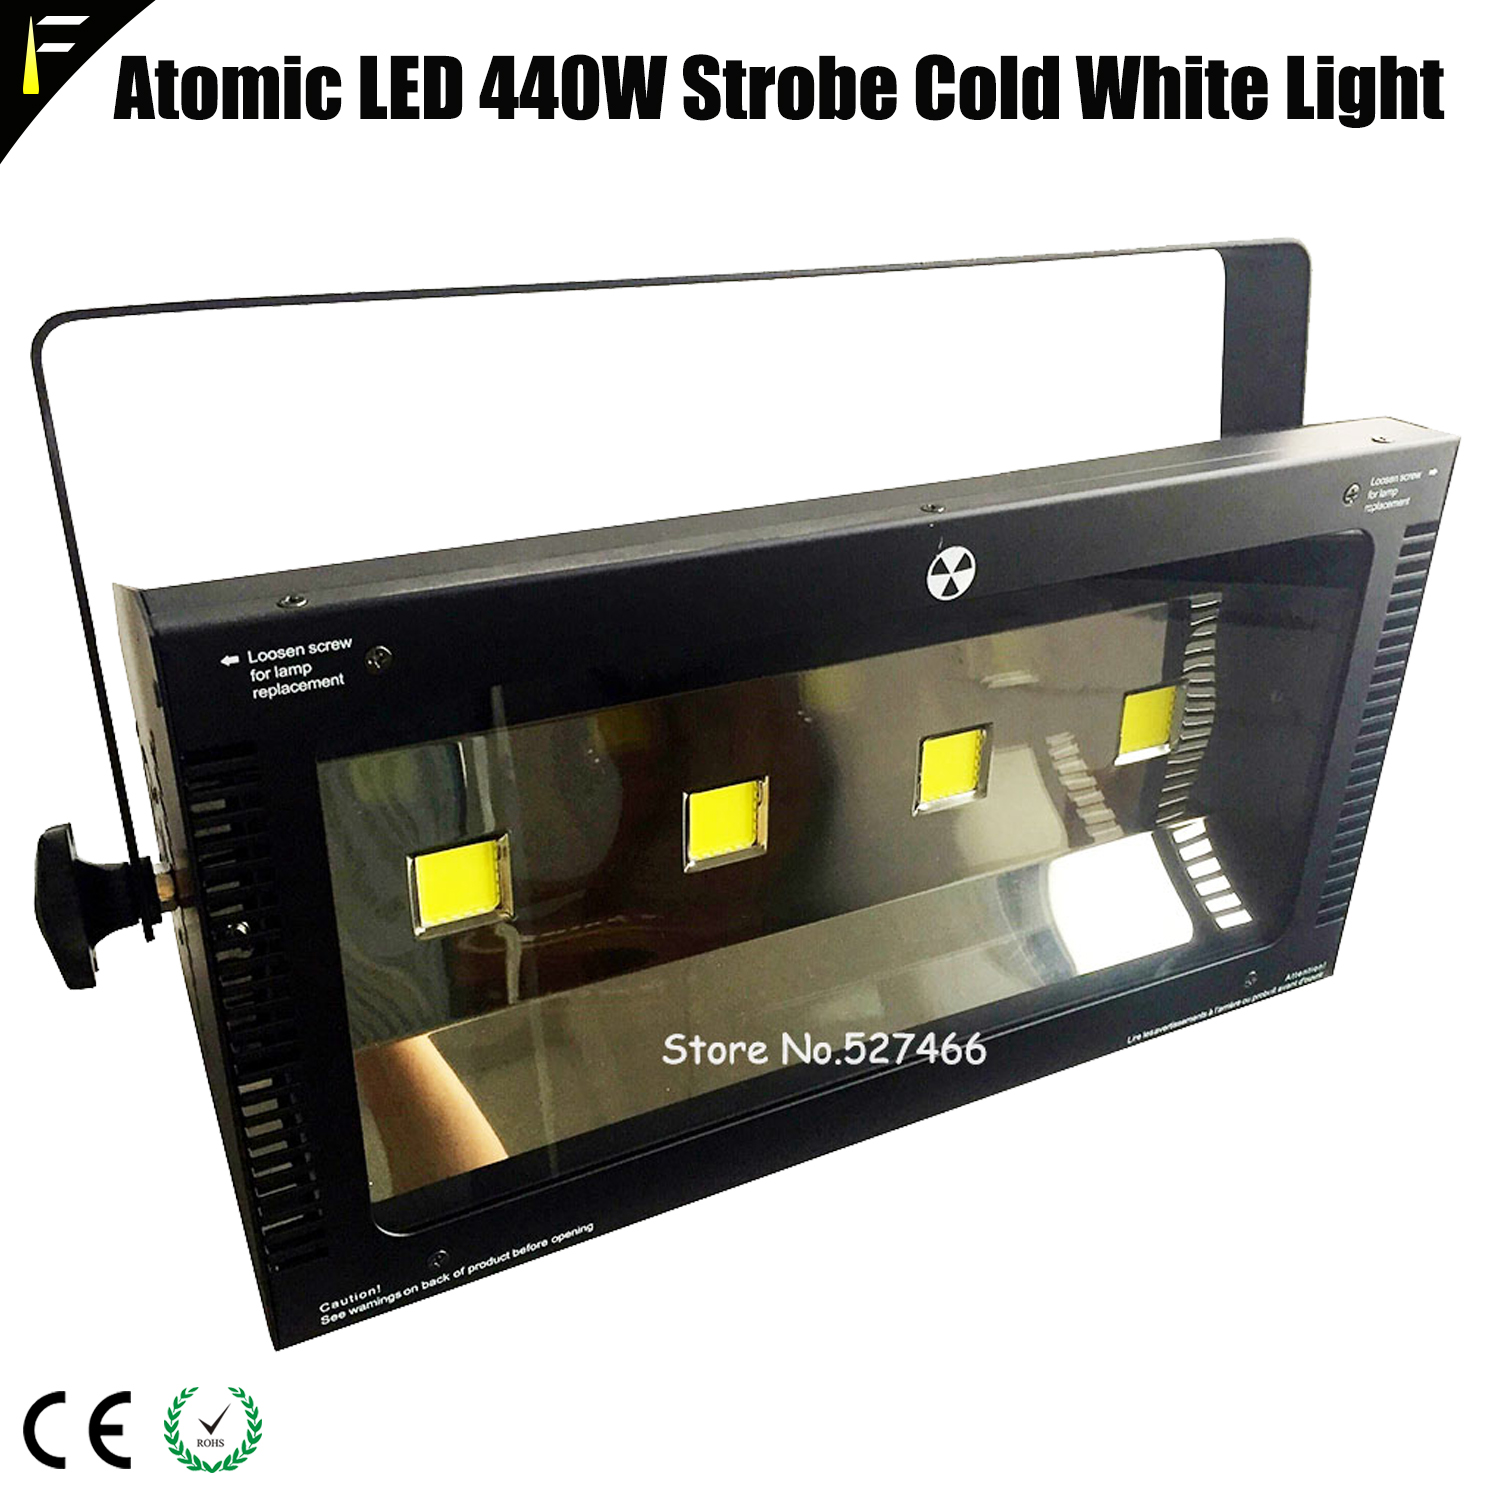 LED Atomic 400W Strobe Light